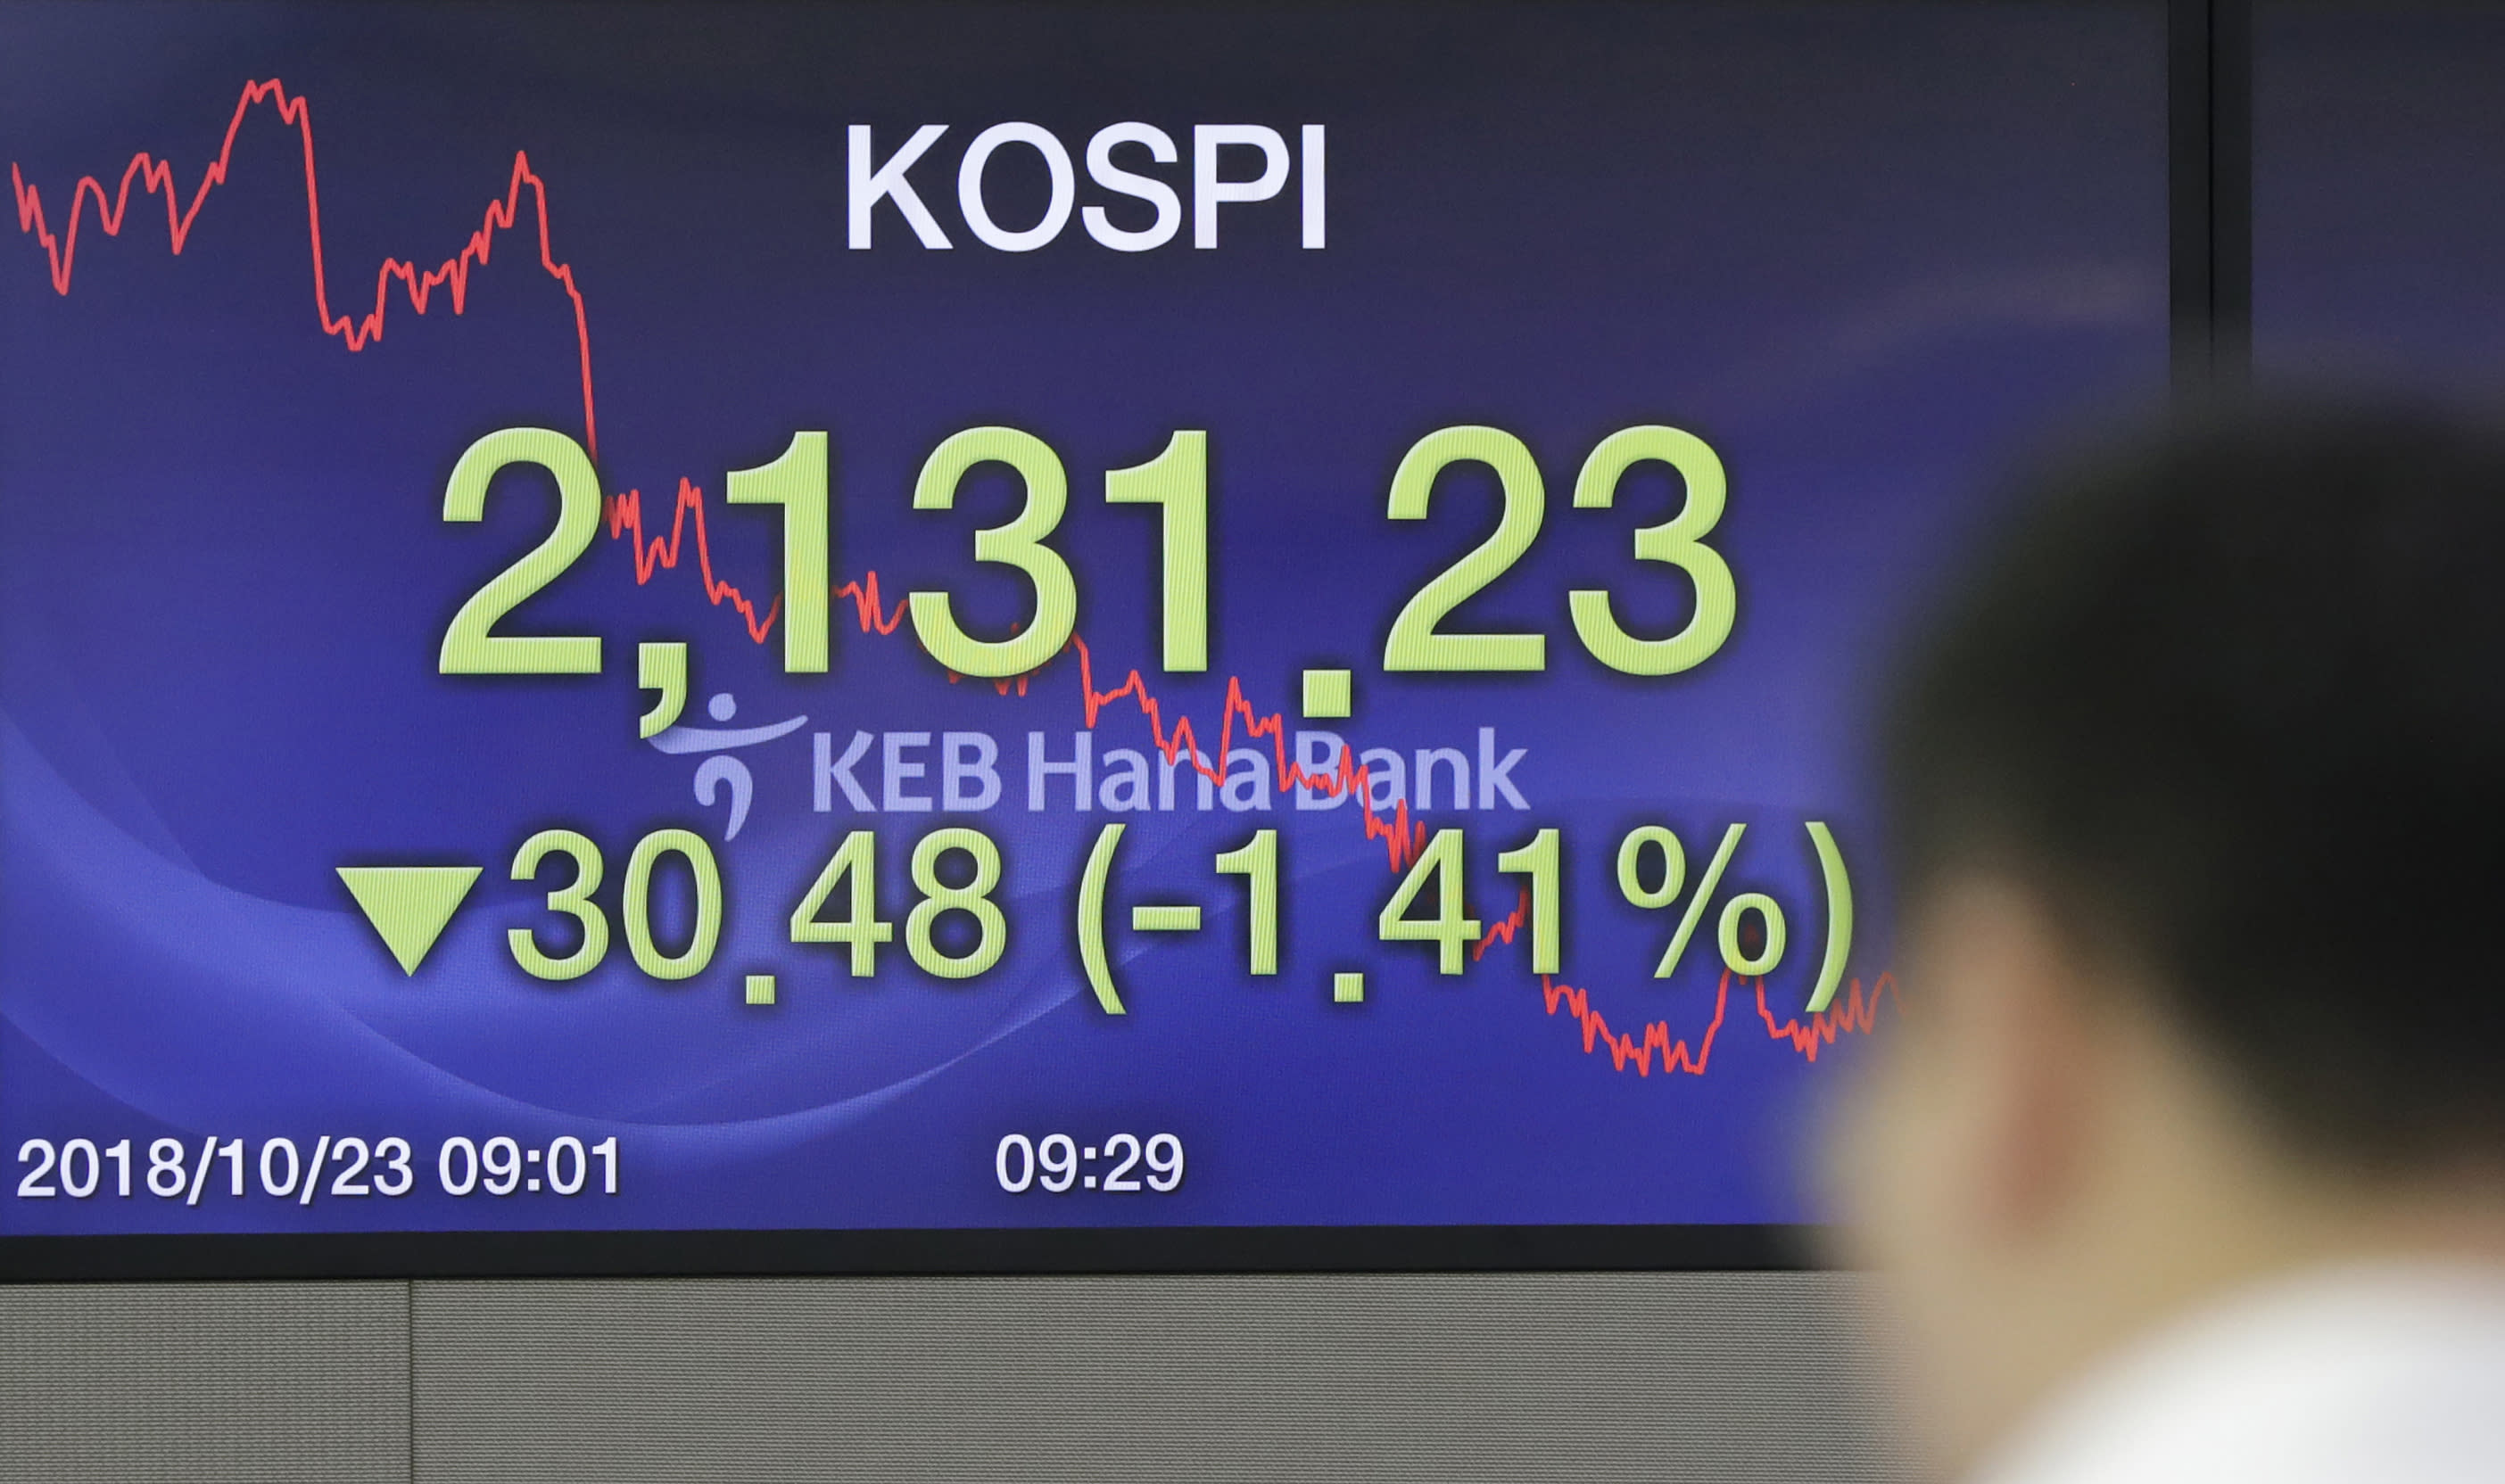 A currency trader stands near the screen showing the Korea Composite Stock Price Index (KOSPI) at the foreign exchange dealing room in Seoul, South Korea, Tuesday, Oct. 23, 2018. Asian stocks slid on Tuesday as worries about softening Chinese growth rattled investors, following a rally that was not picked up by Wall Street overnight. (AP Photo/Lee Jin-man)